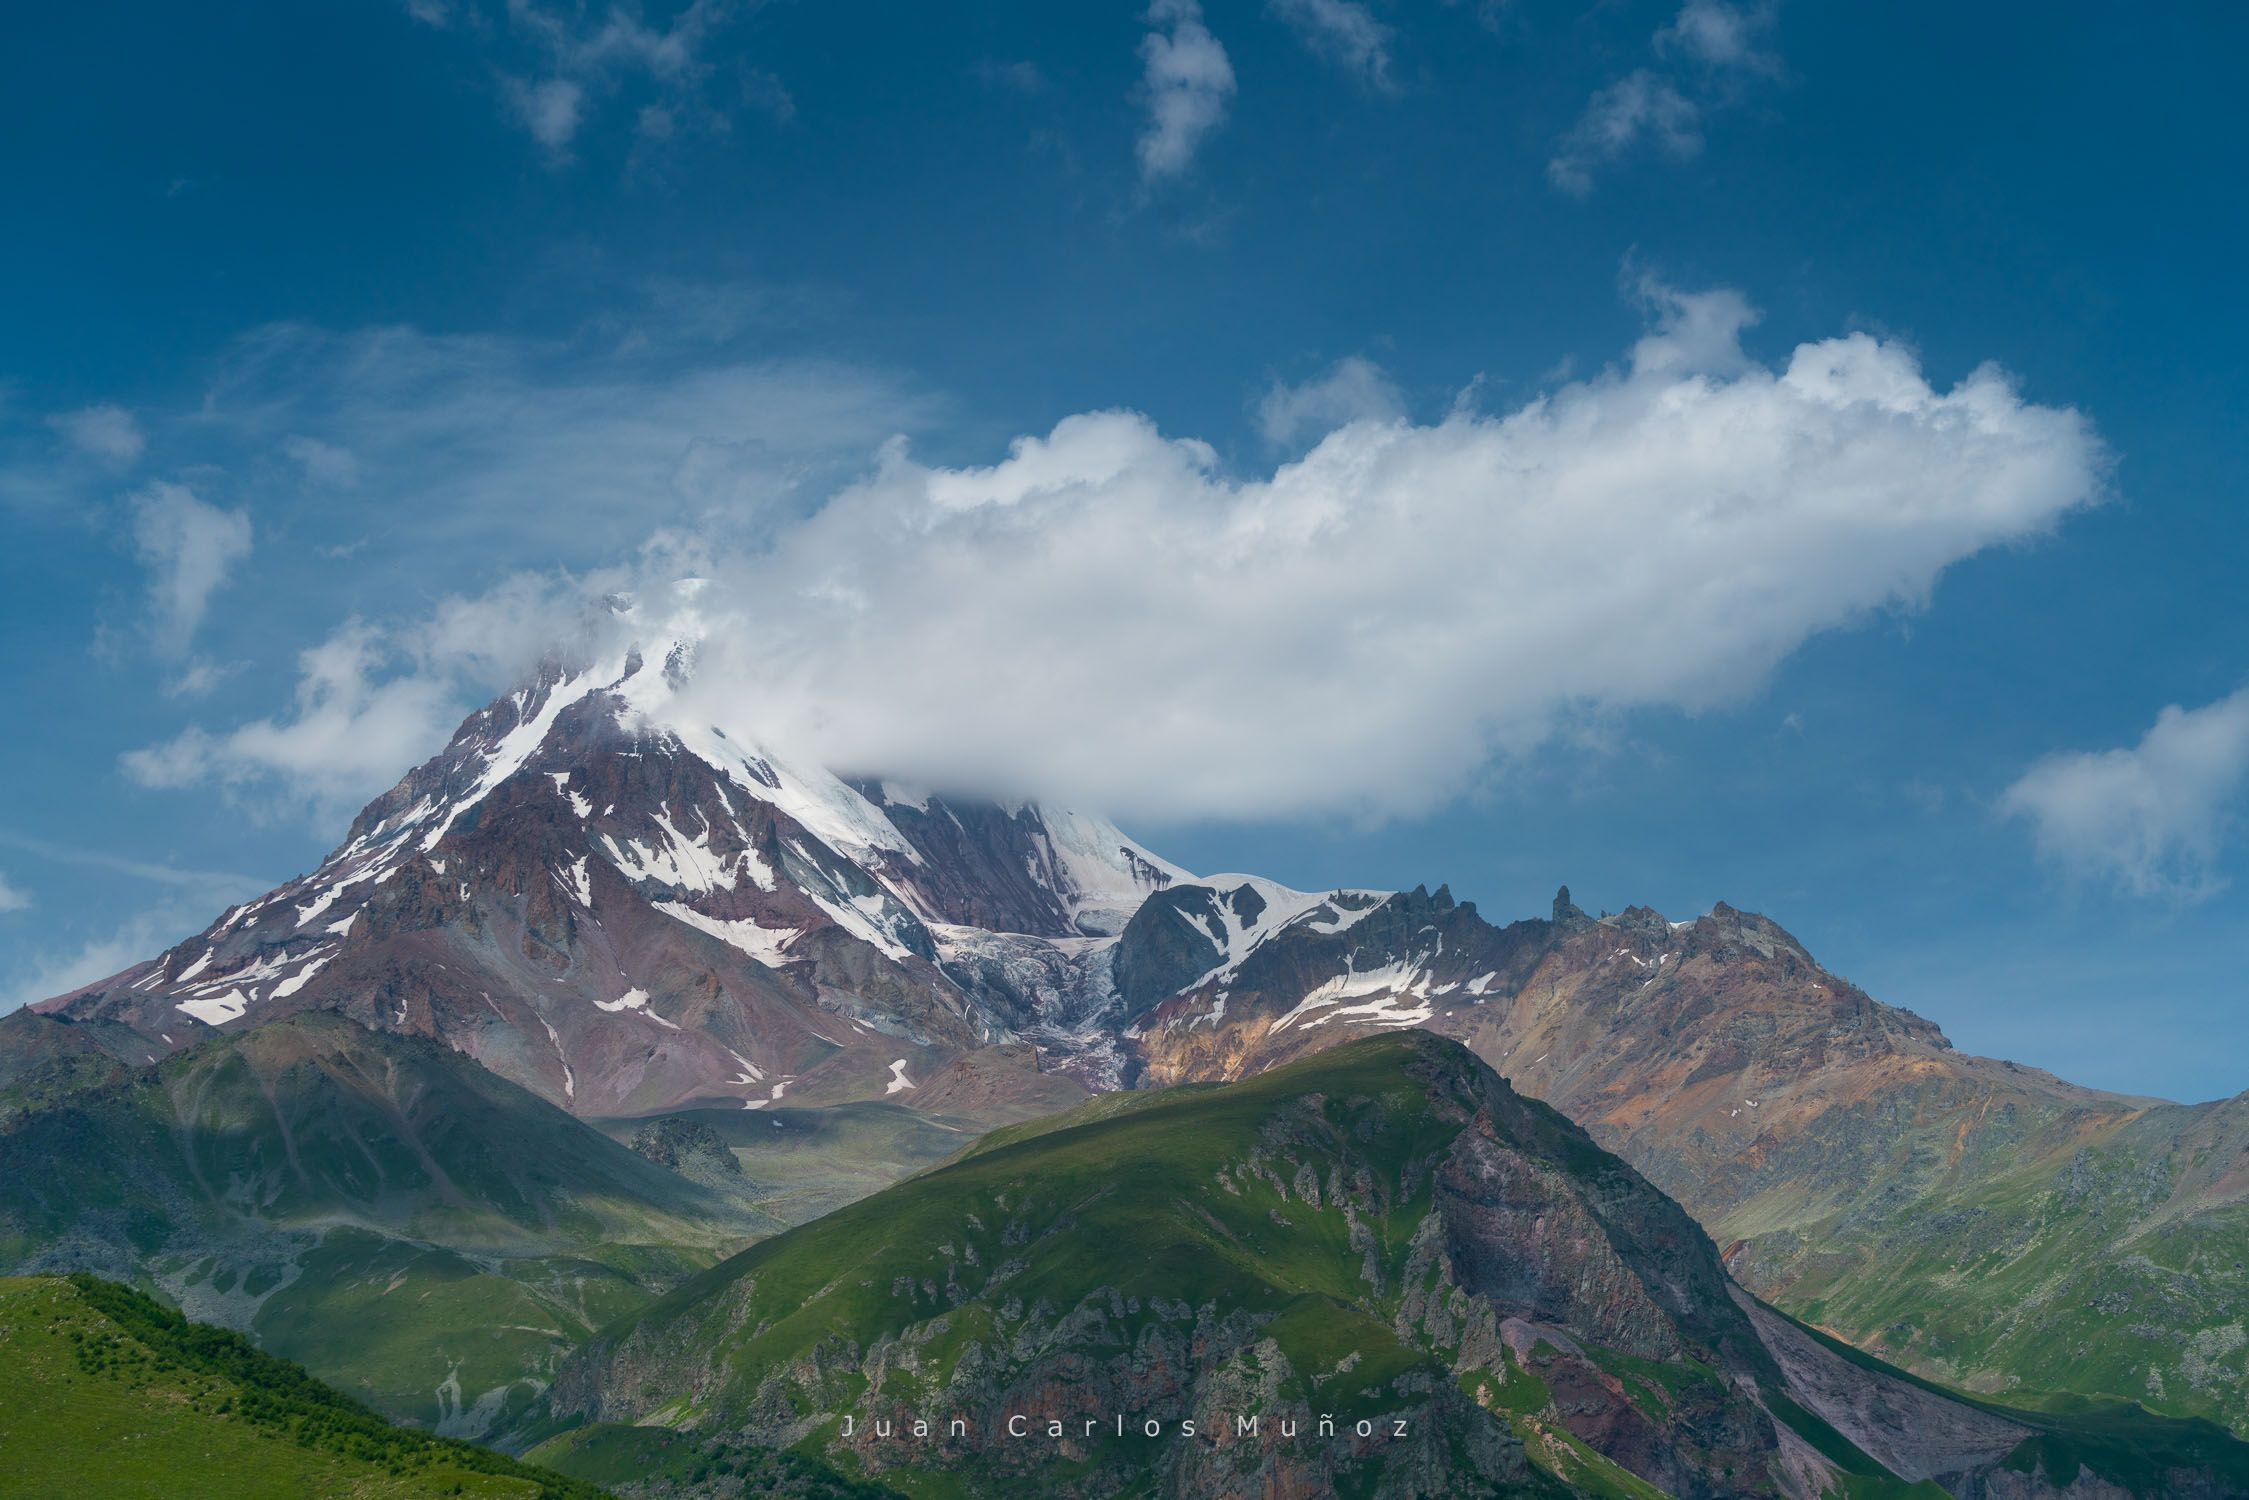 Kazbegi Peak and Glacier, Kazbegi Reserve, Georgian Military Highway, Mtskheta-Mtianeti Region, Georgia, Middle East